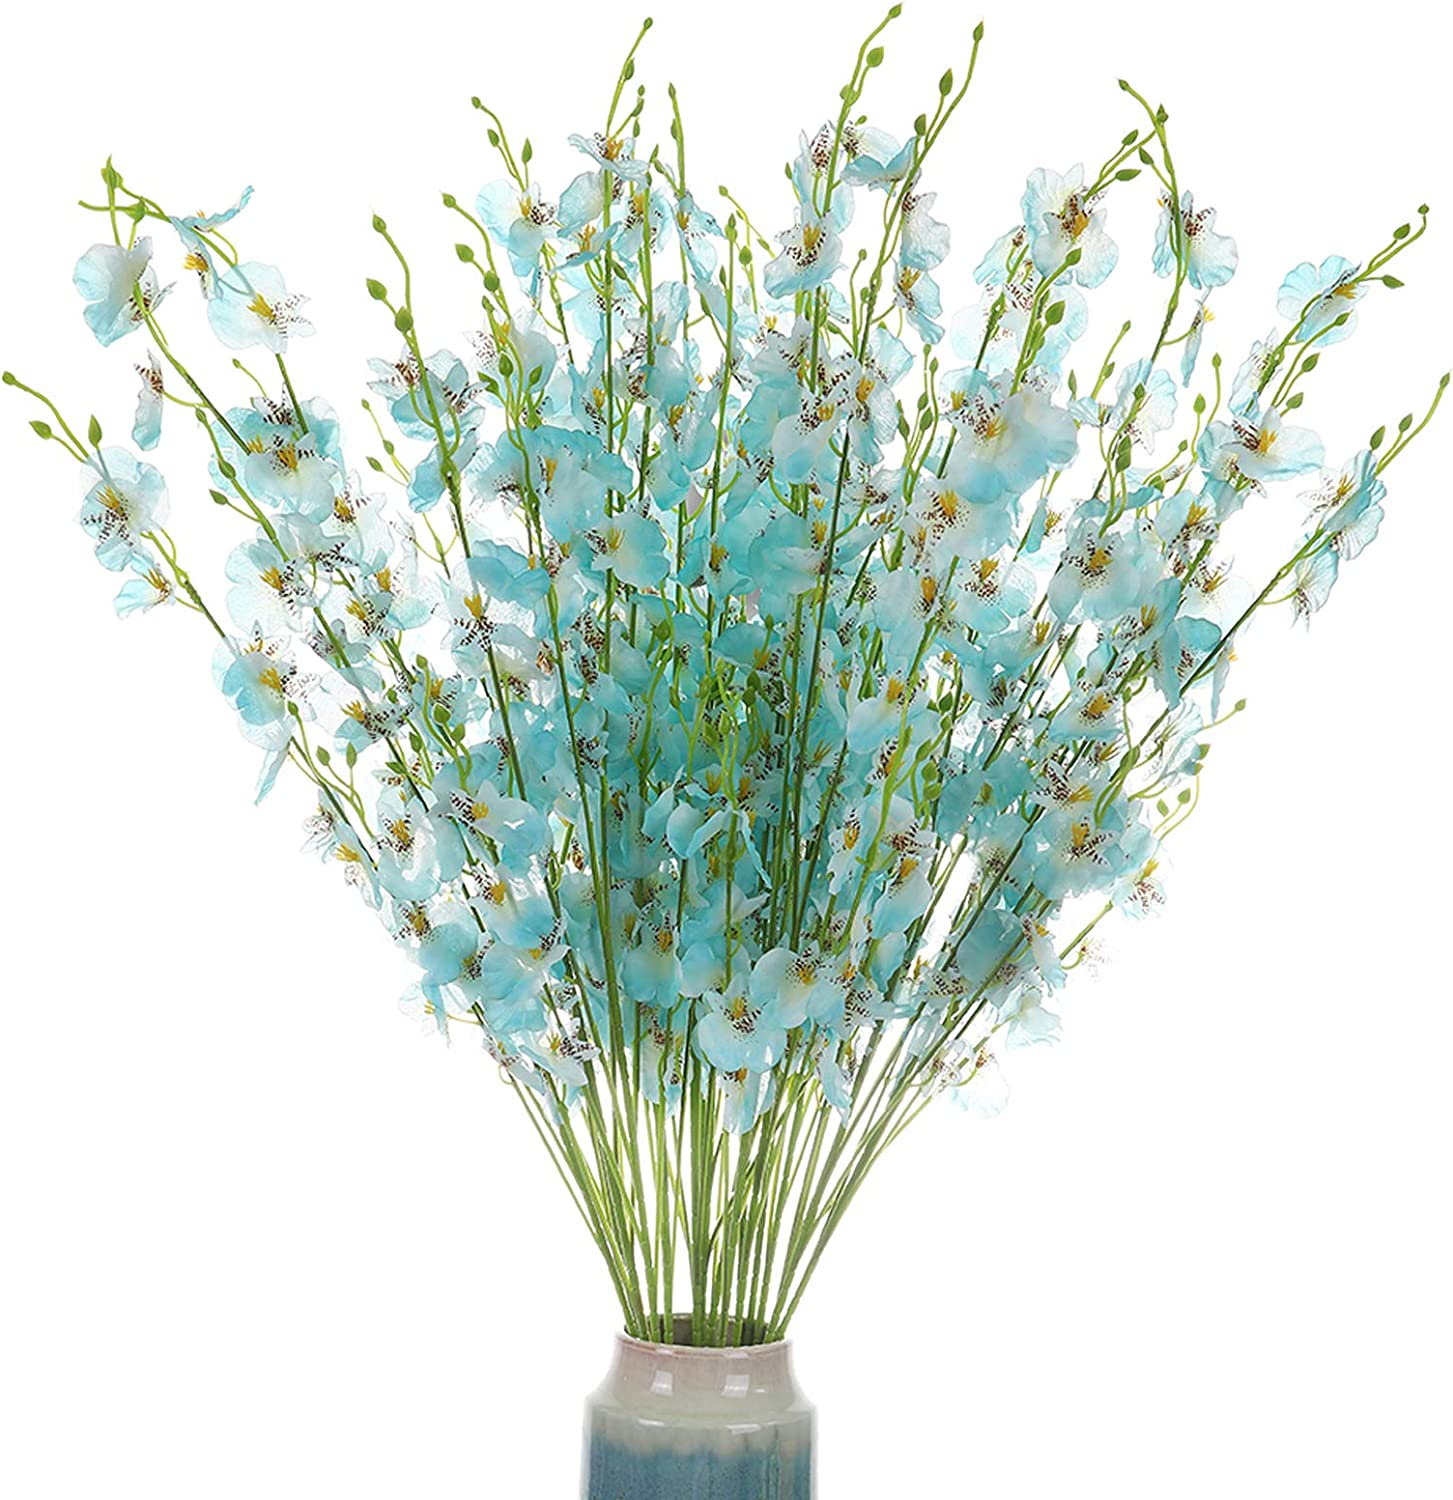 Momkids 10 Pcs Long Stem Artificial Orchids Flower Fake Silk Dancing Lady Orchids Flowers Phalaenopsis forsythia in Bulk of Wedding Party Garden DIY Home Decor(Blue, 37.5 Inch)